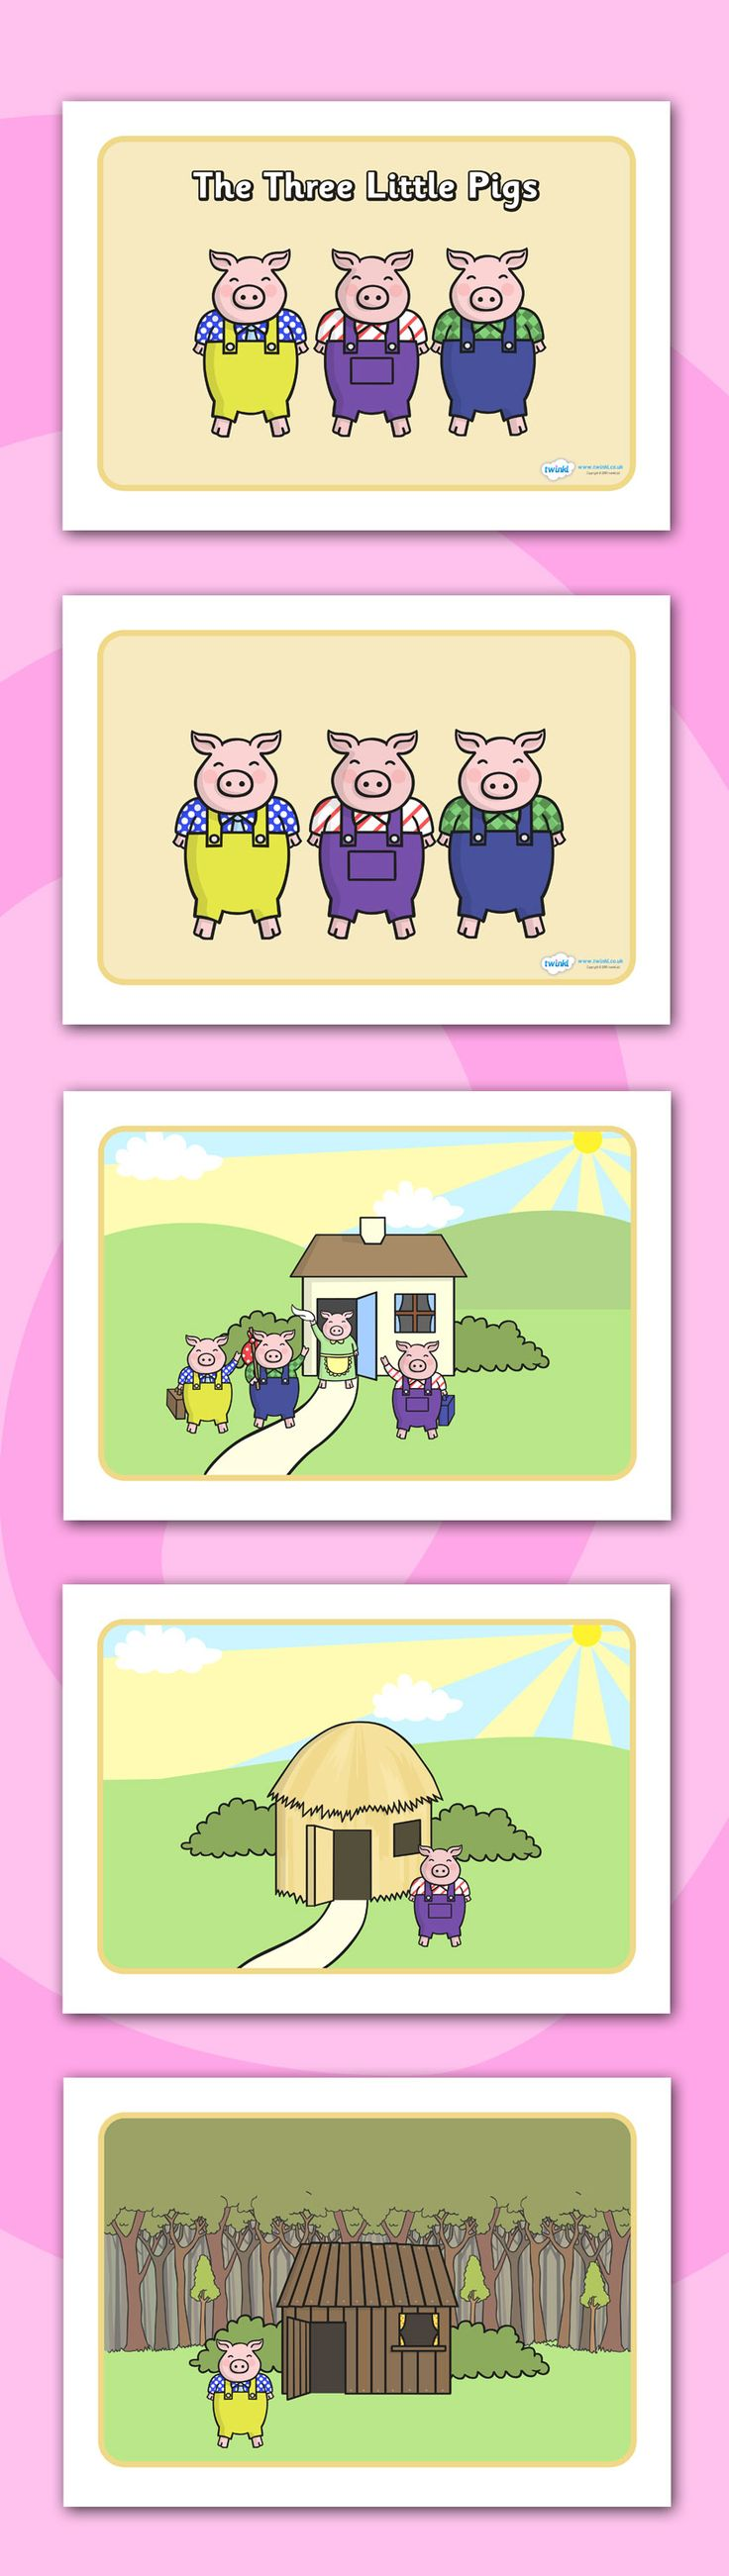 Twinkl Resources >> The Three Little Pigs Story Sequencing >> Printable resources for Primary, EYFS, KS1 and SEN. Thousands of classroom displays and teaching aids! Topics, Traditional Tales, The Three Little Pigs, Story Sequencing